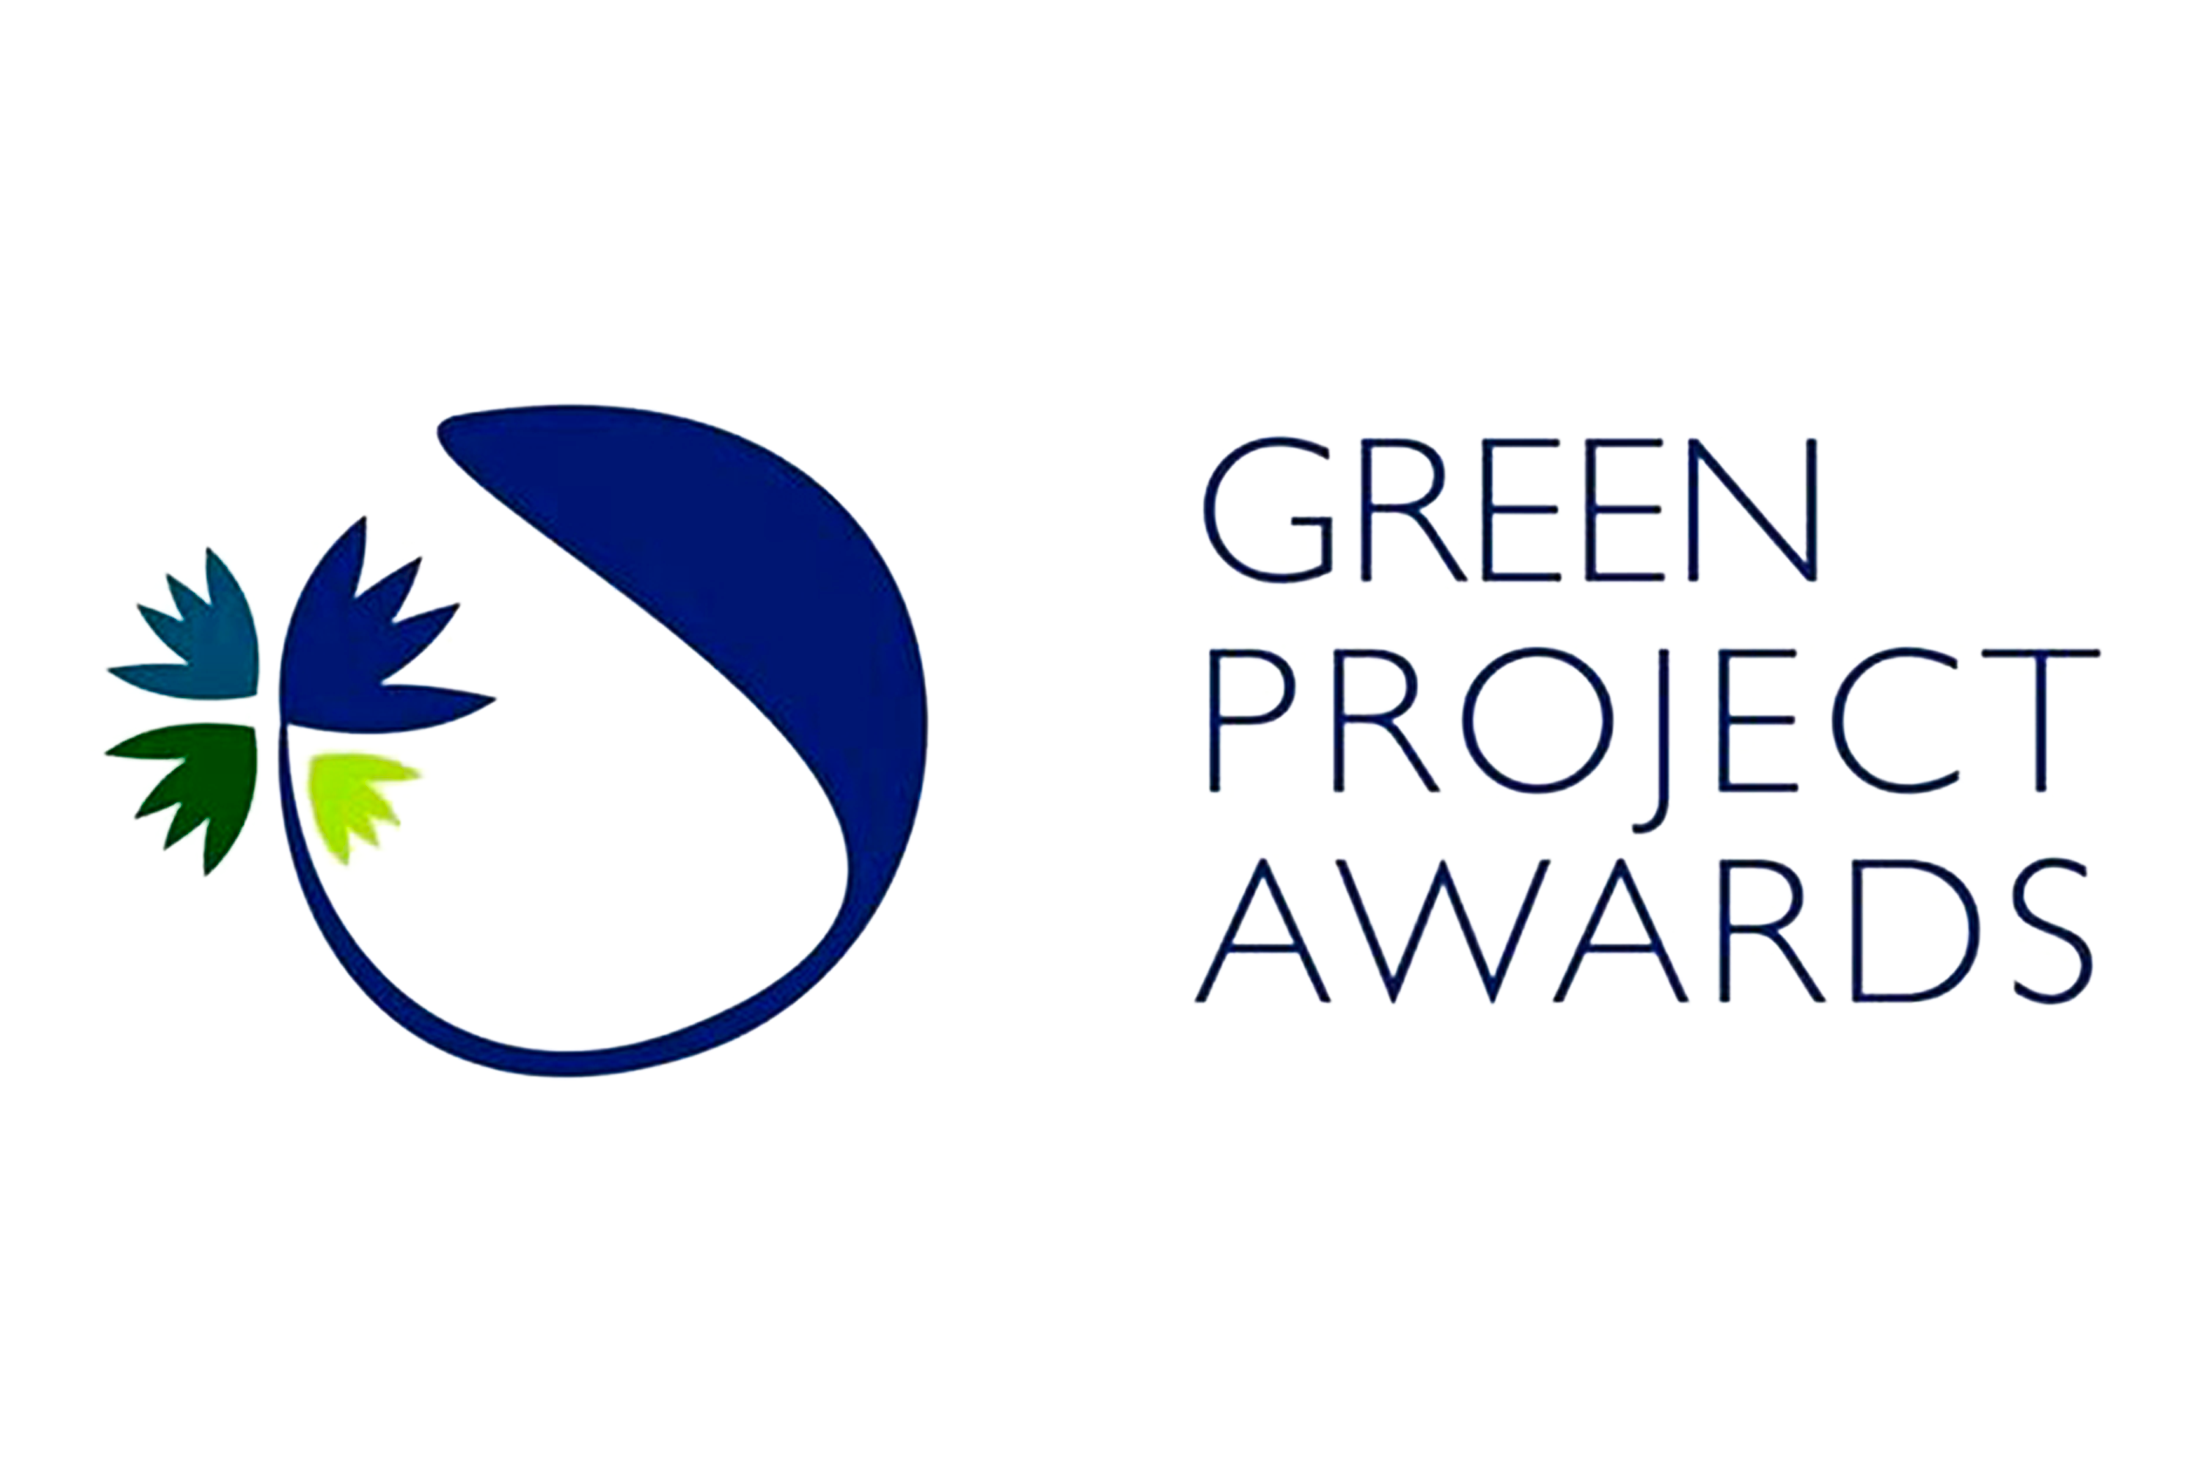 greenprojectawards